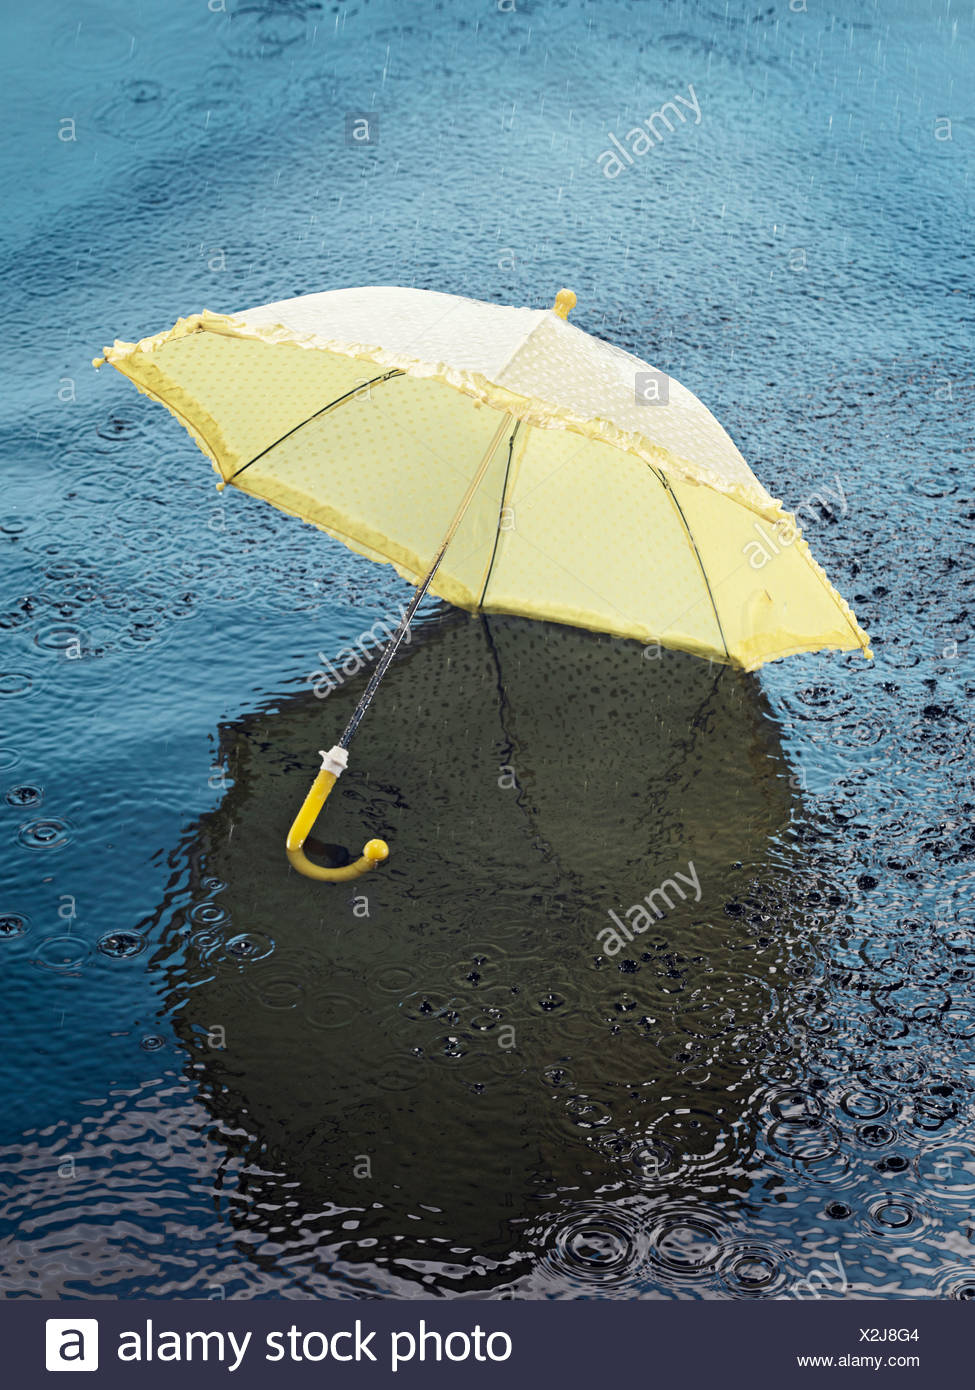 Umbrella floating on water, high angle view - Stock Image